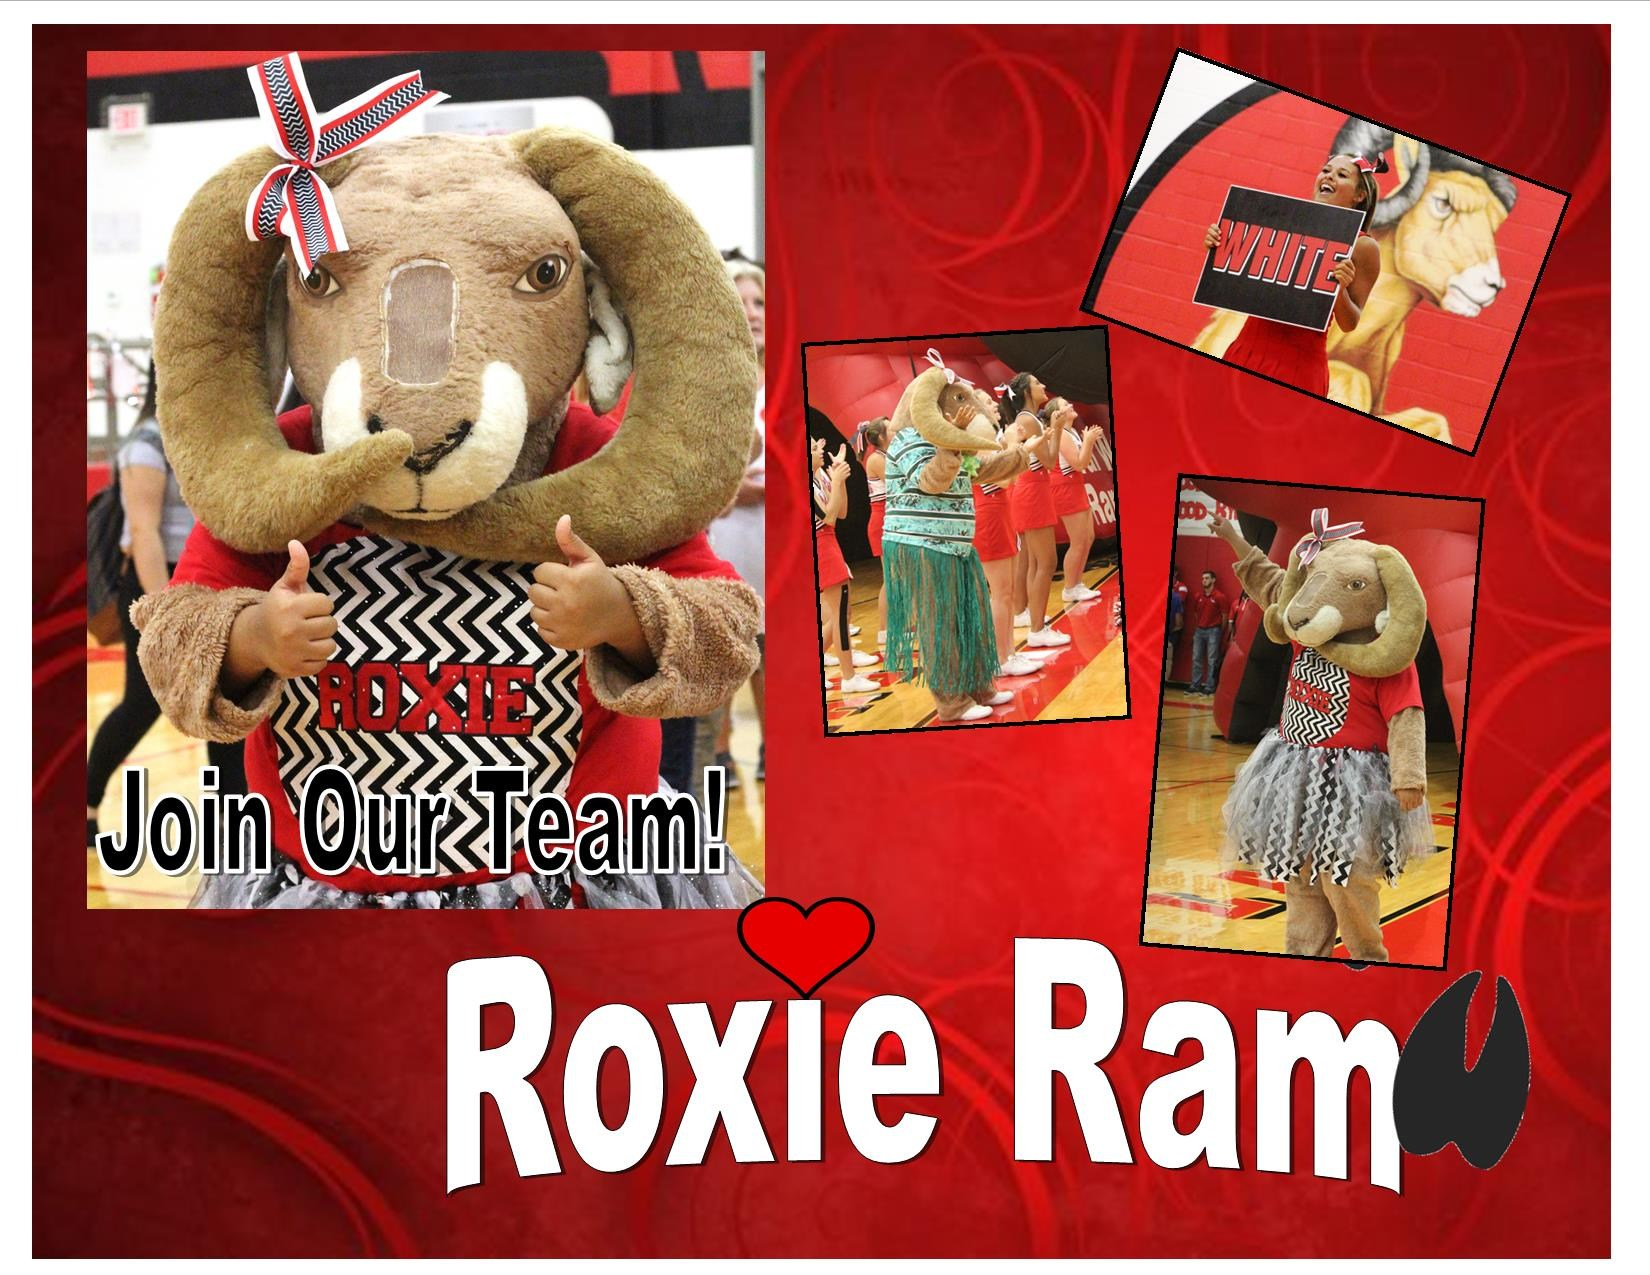 Pictures of Mascot Roxie the Ram